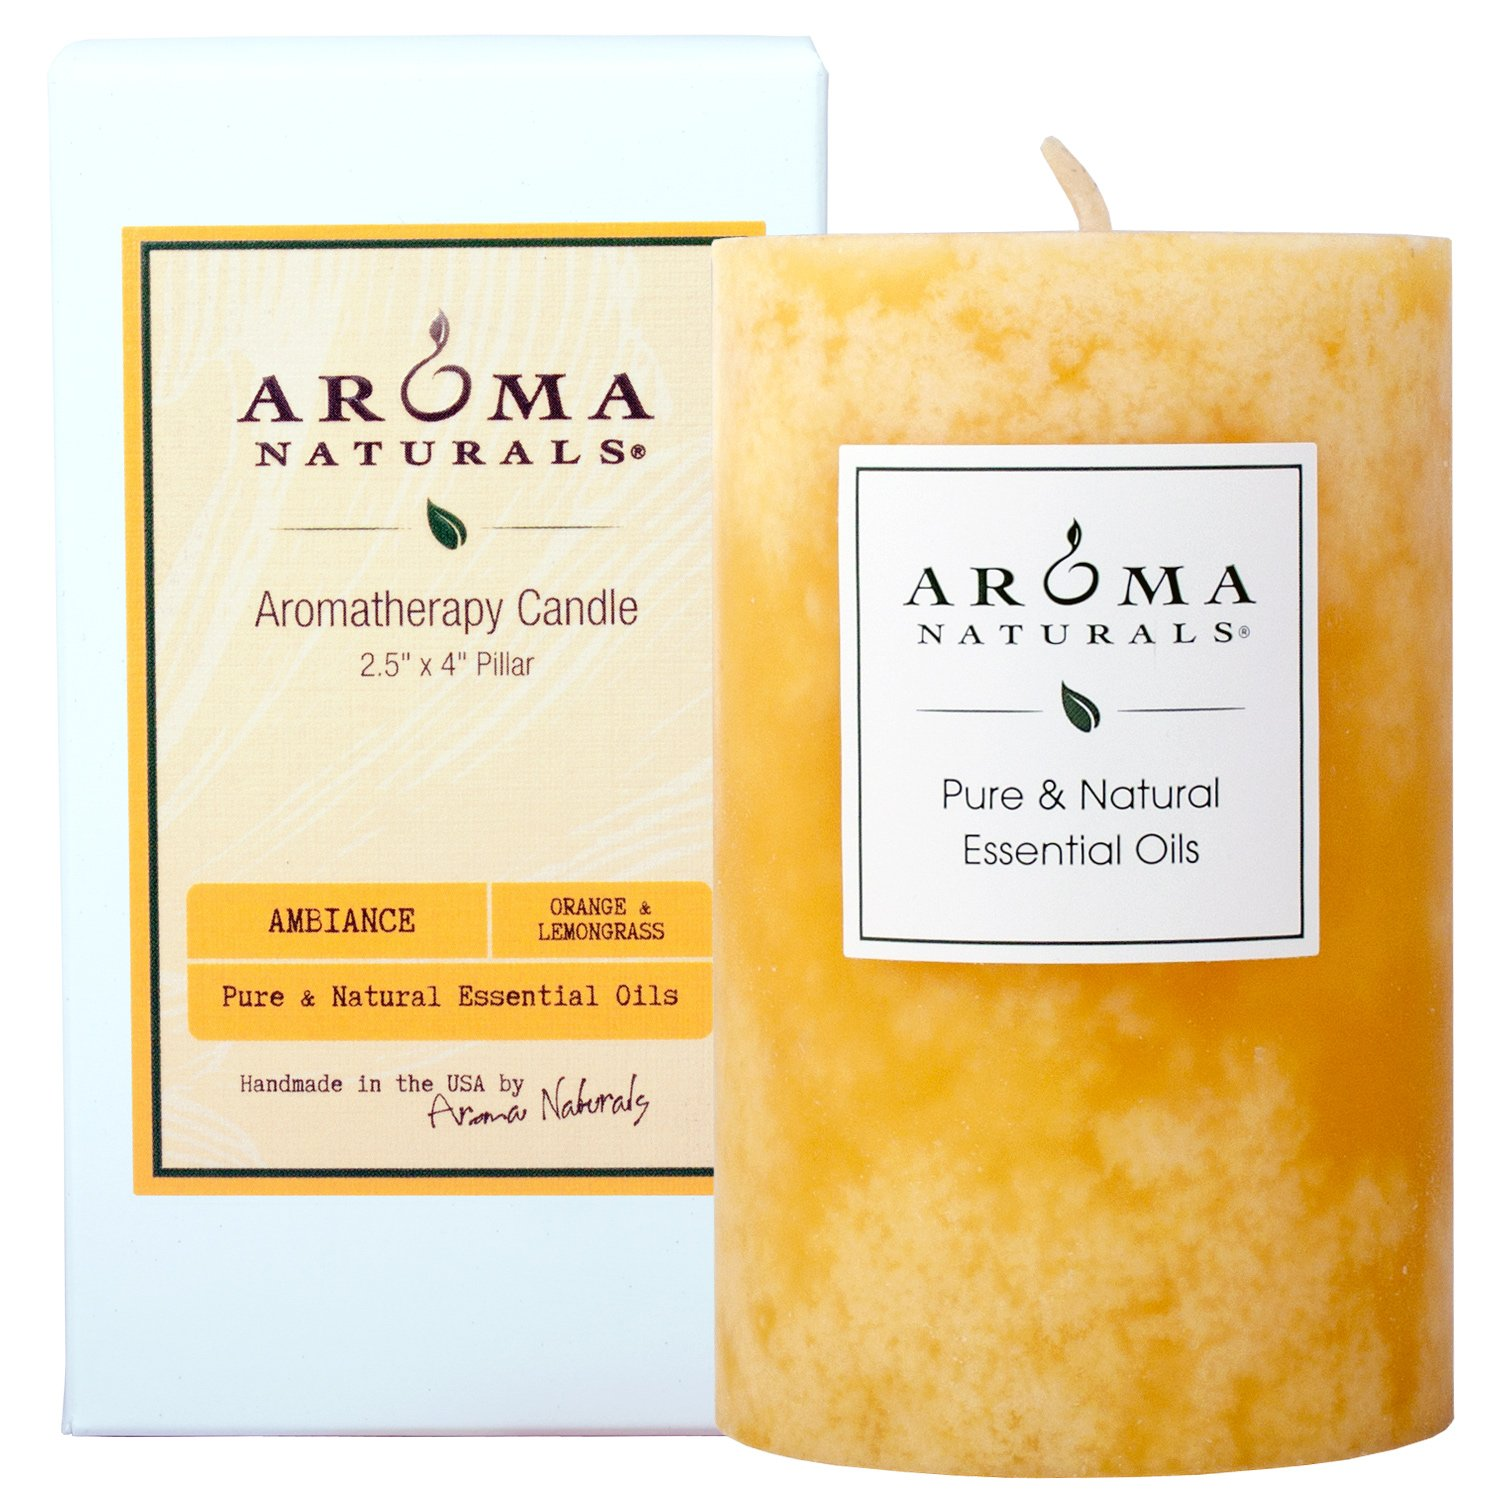 Aroma Naturals Essential Oil Orange and Lemongrass Scented Pillar Candle, Ambiance, 2.5 inch x 4 inch by Aroma Naturals